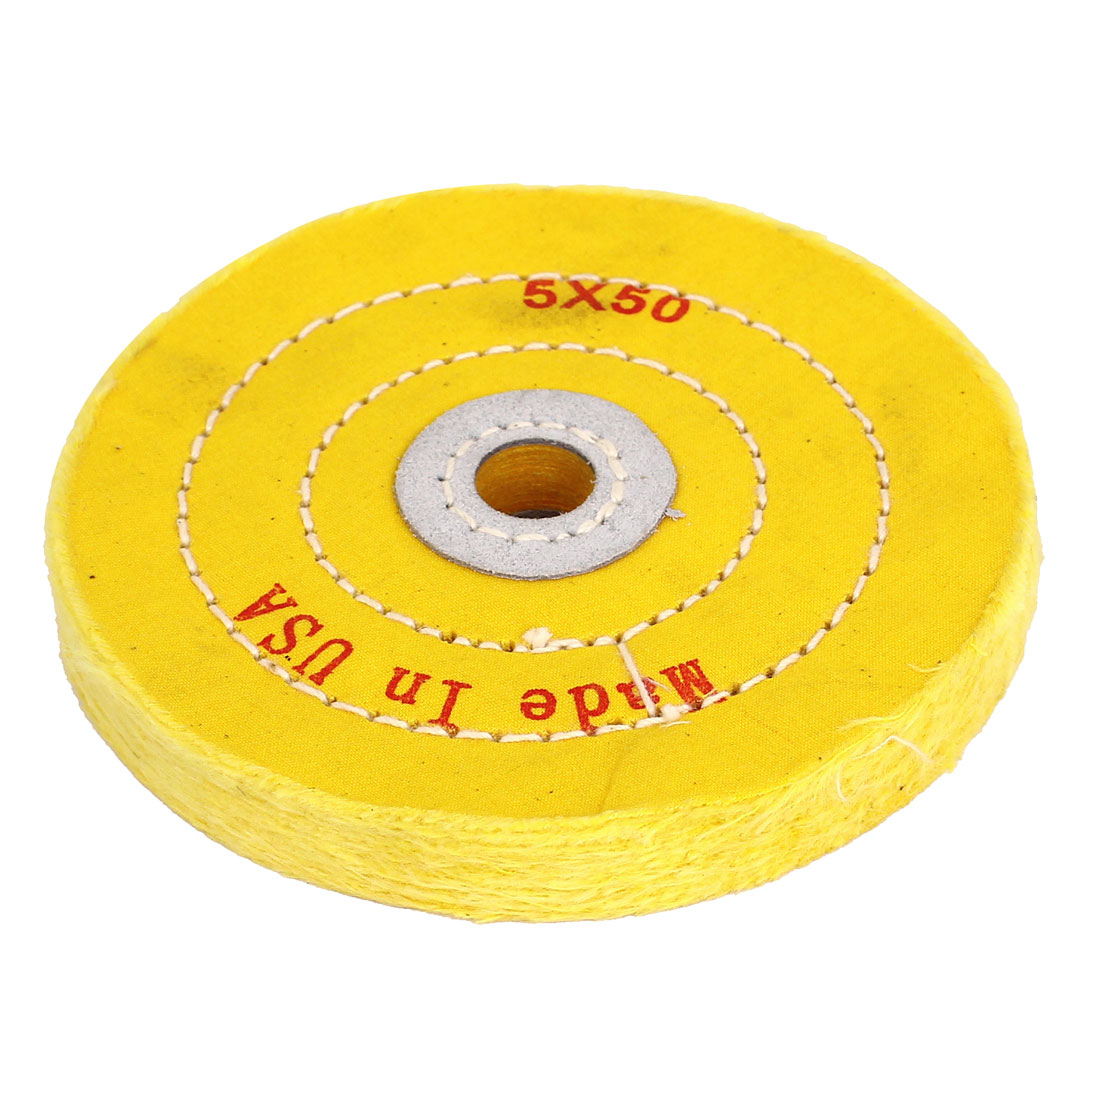 "5/8"" Arbor Hole 5"" Dia 50-Ply Cotton Muslin Jewelry Polishing Wheel Yellow"